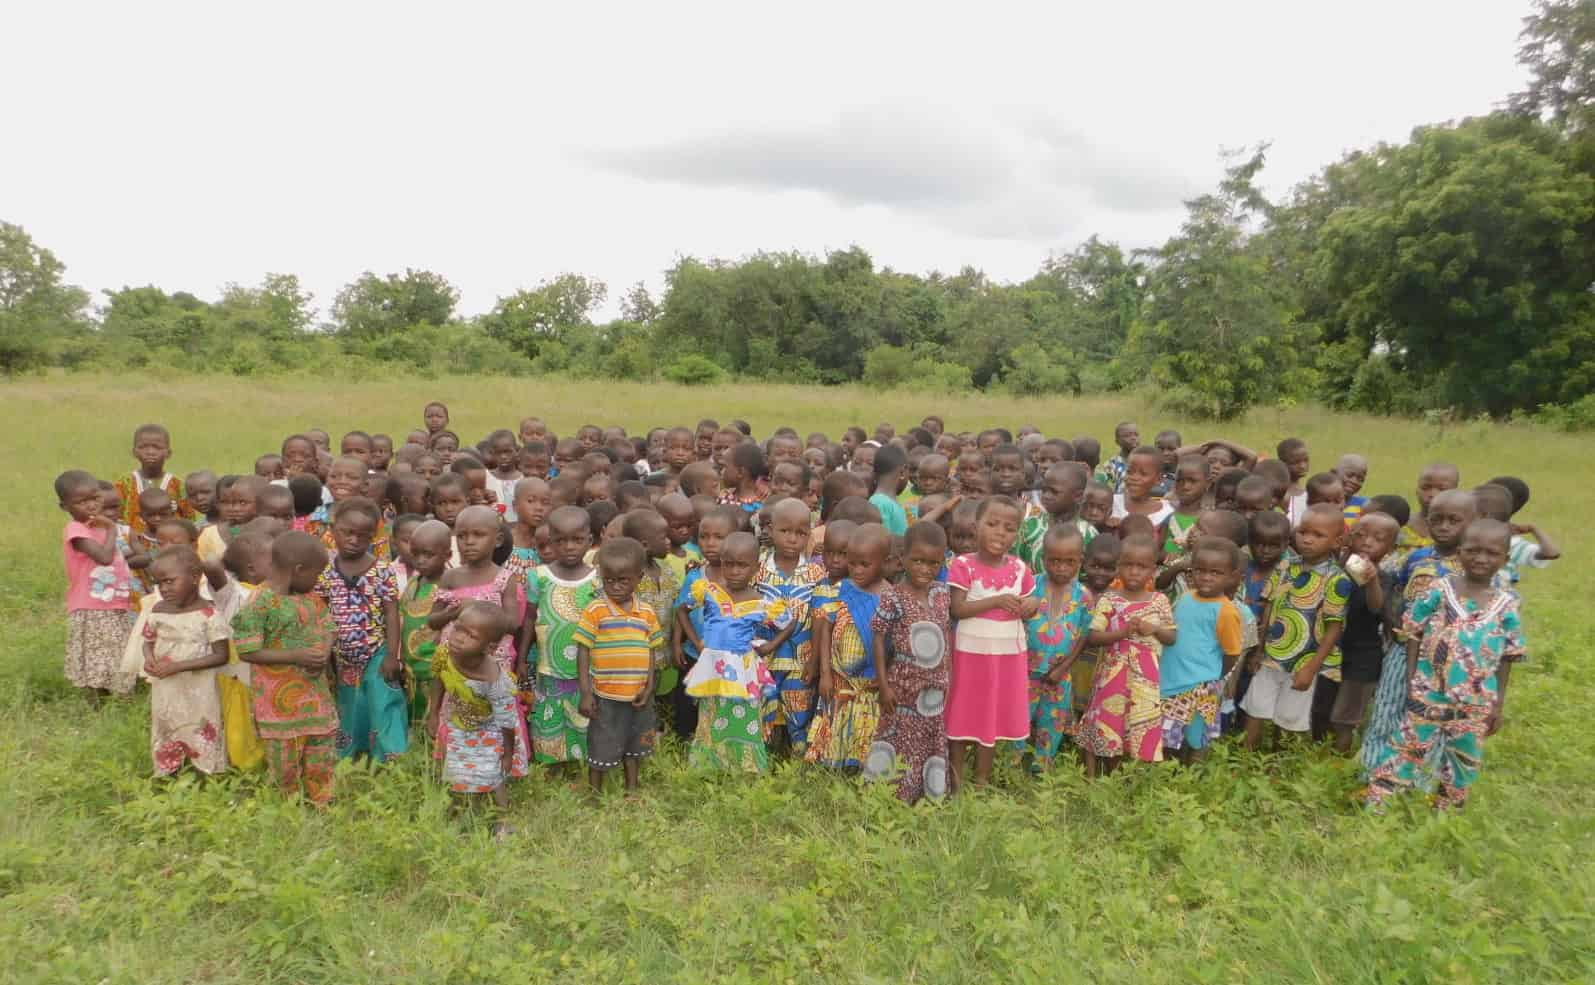 A large group of children in colorful clothes stand in a field in rural Togo.